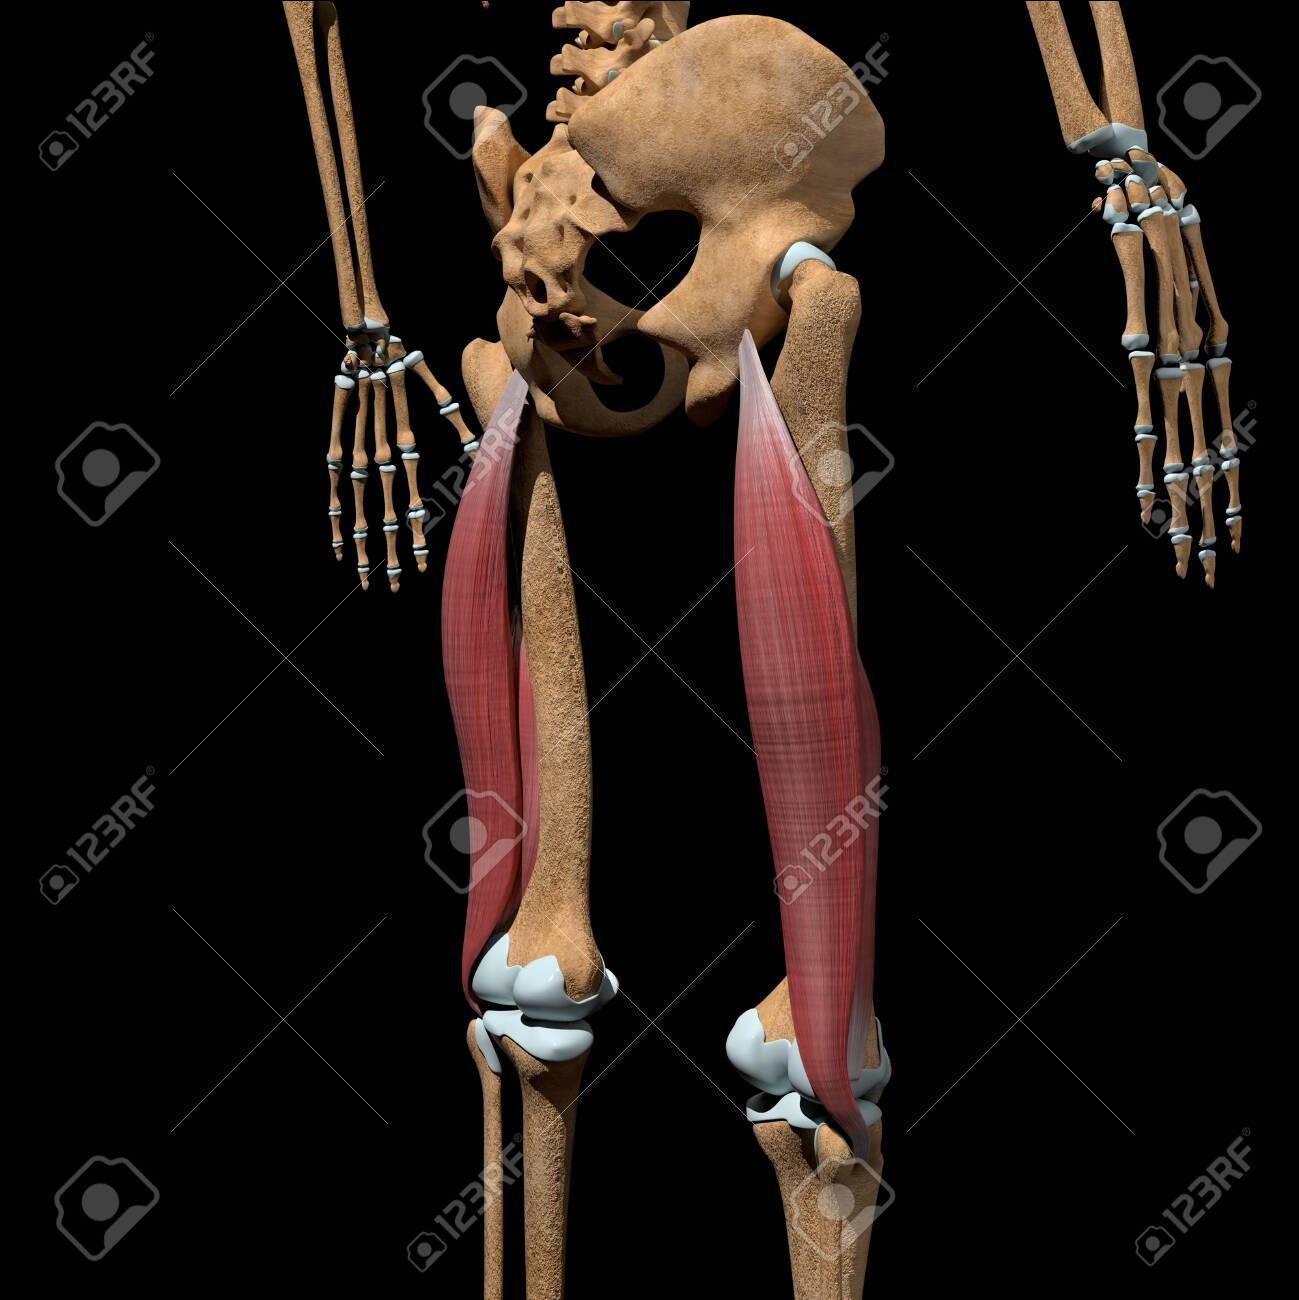 This 3d illustration shows the biceps femoris muscles on skeleton - 142171659